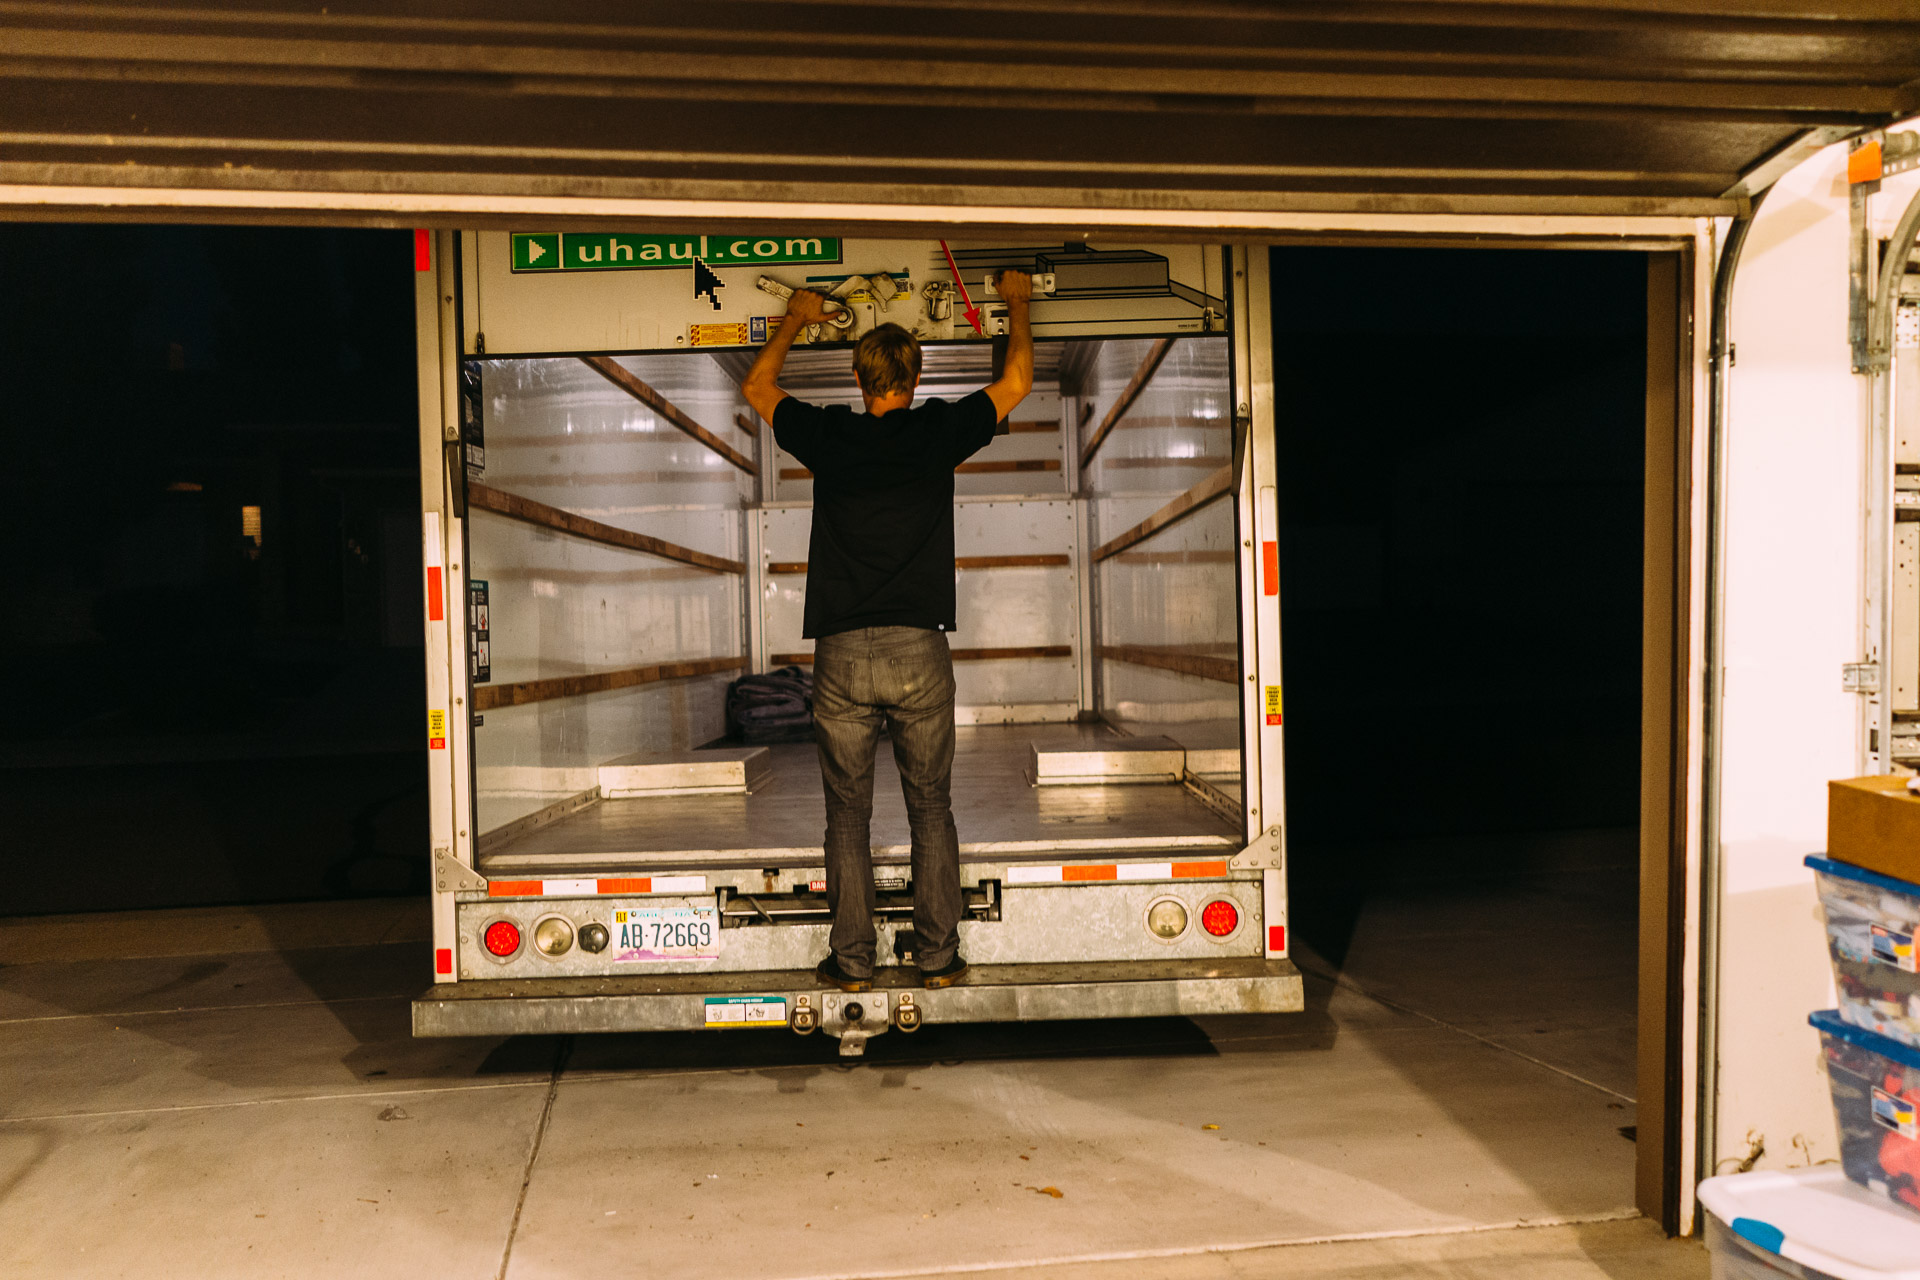 A   U-Haul journey across the Rocky Mountains in Colorado (Sony RX1). 2 a.m. and we are finally unloaded. Time to drop off the Uhaul van.